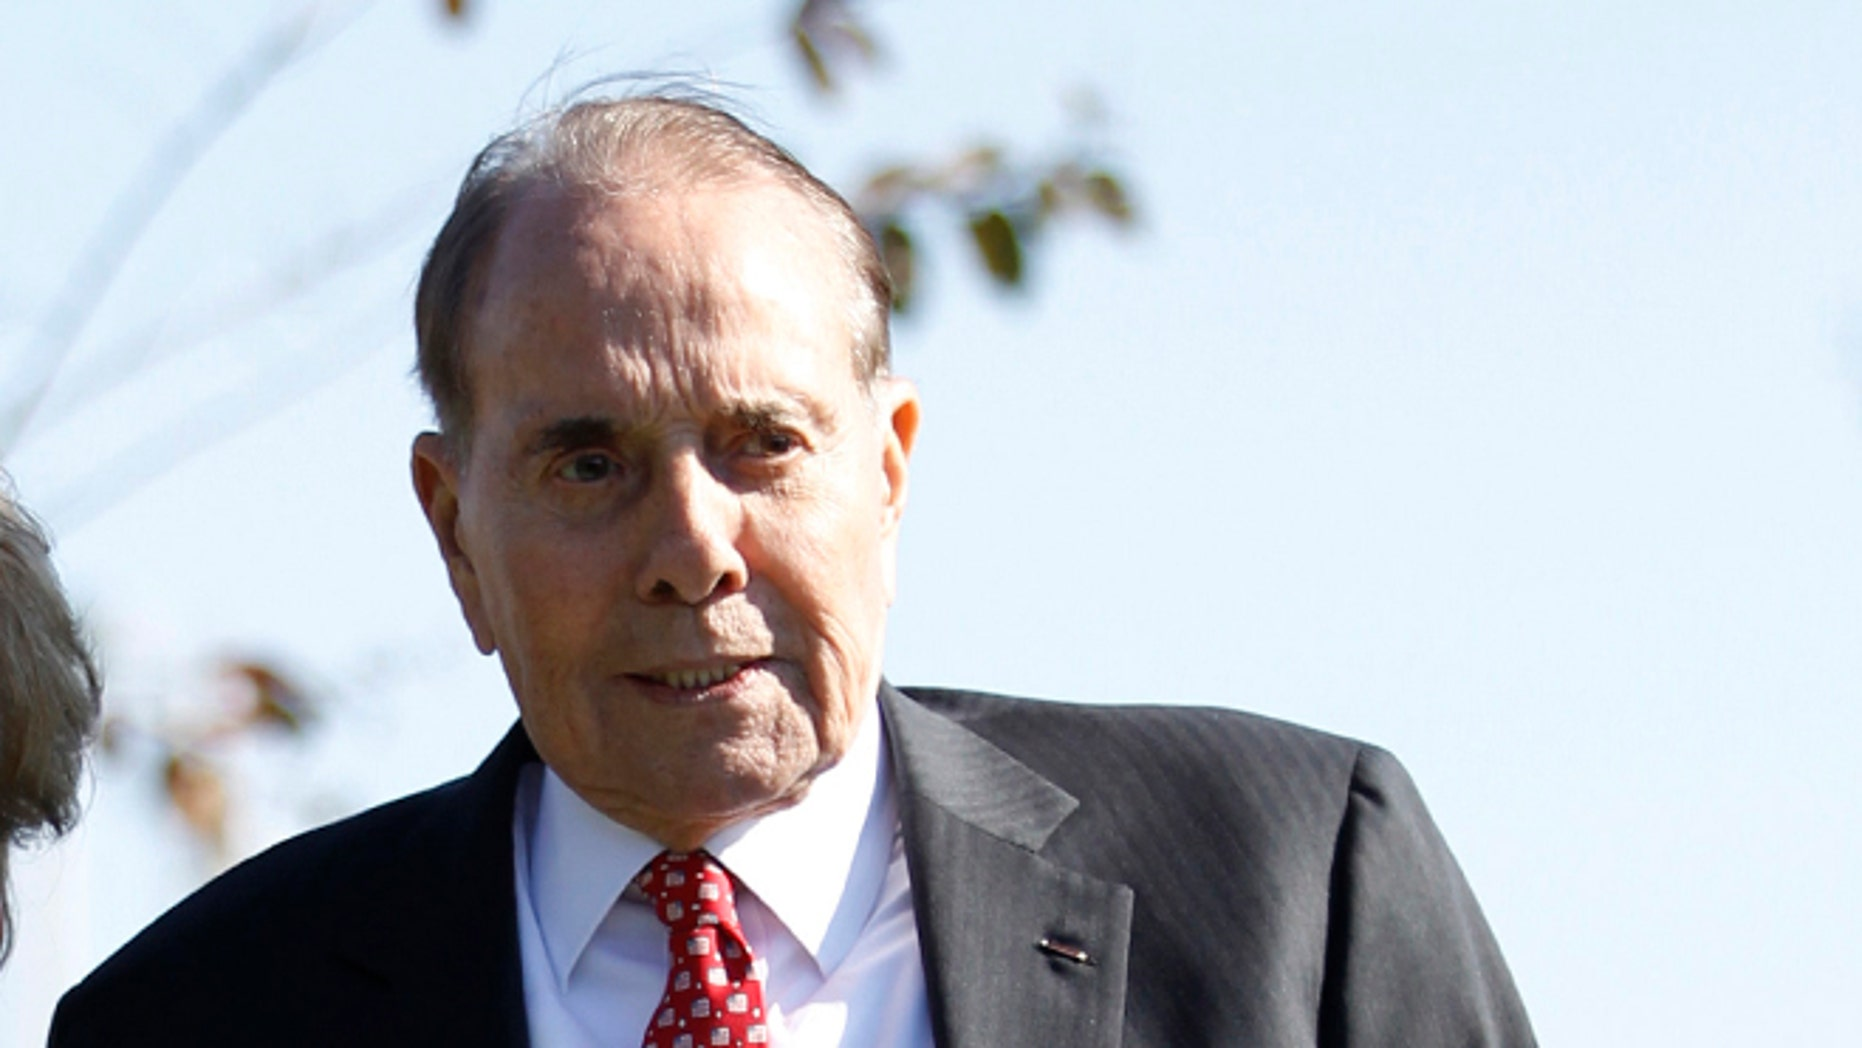 FILE: November 1, 2011: Former Sen. Bob Dole, R-Kansas, at Ronald Reagan National Airport near Washington, D.C.